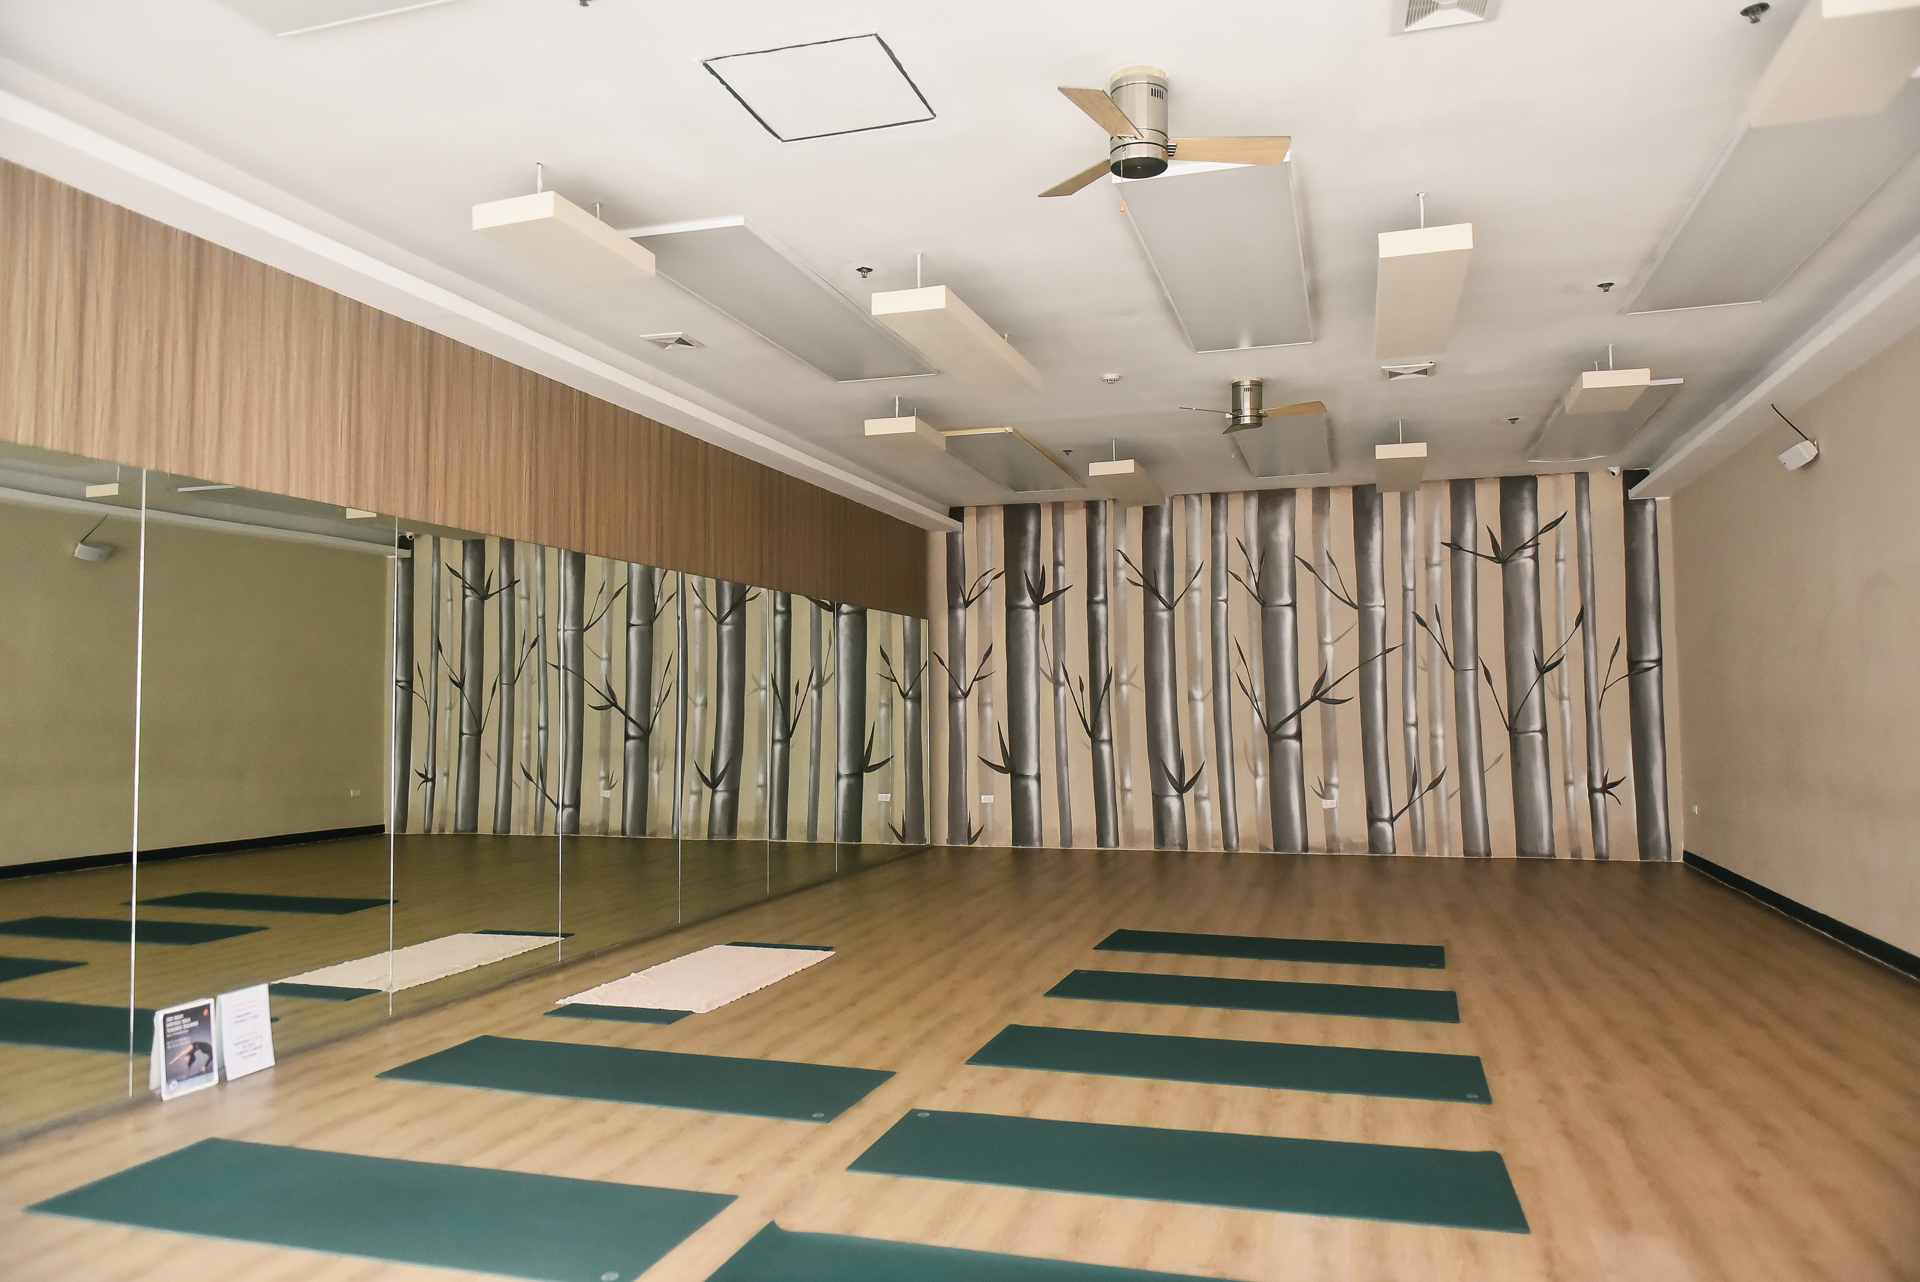 Evolve into a better you with Evolve Yoga and Fitness!